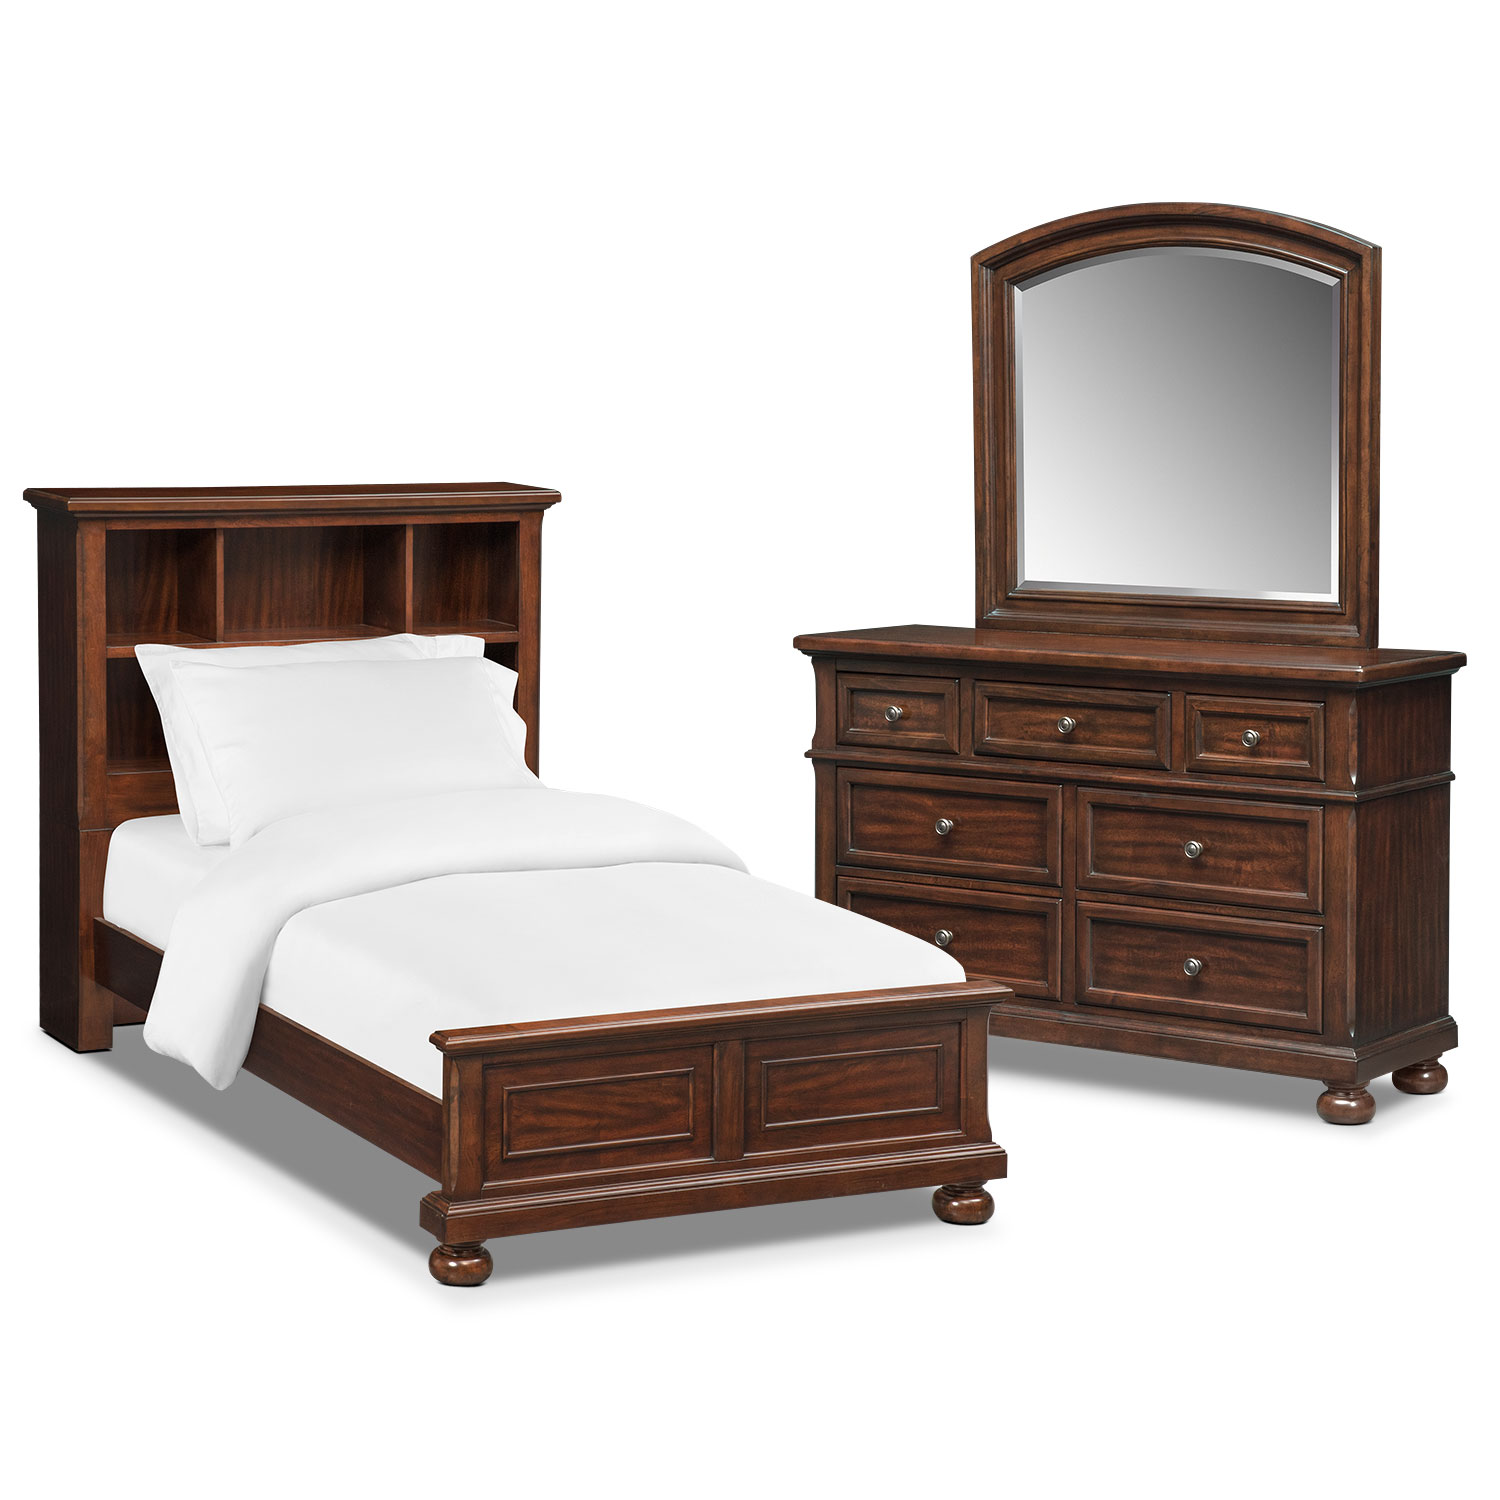 Bedroom Furniture - Hanover Youth 5-Piece Bookcase Bedroom Set with Dresser and Mirror